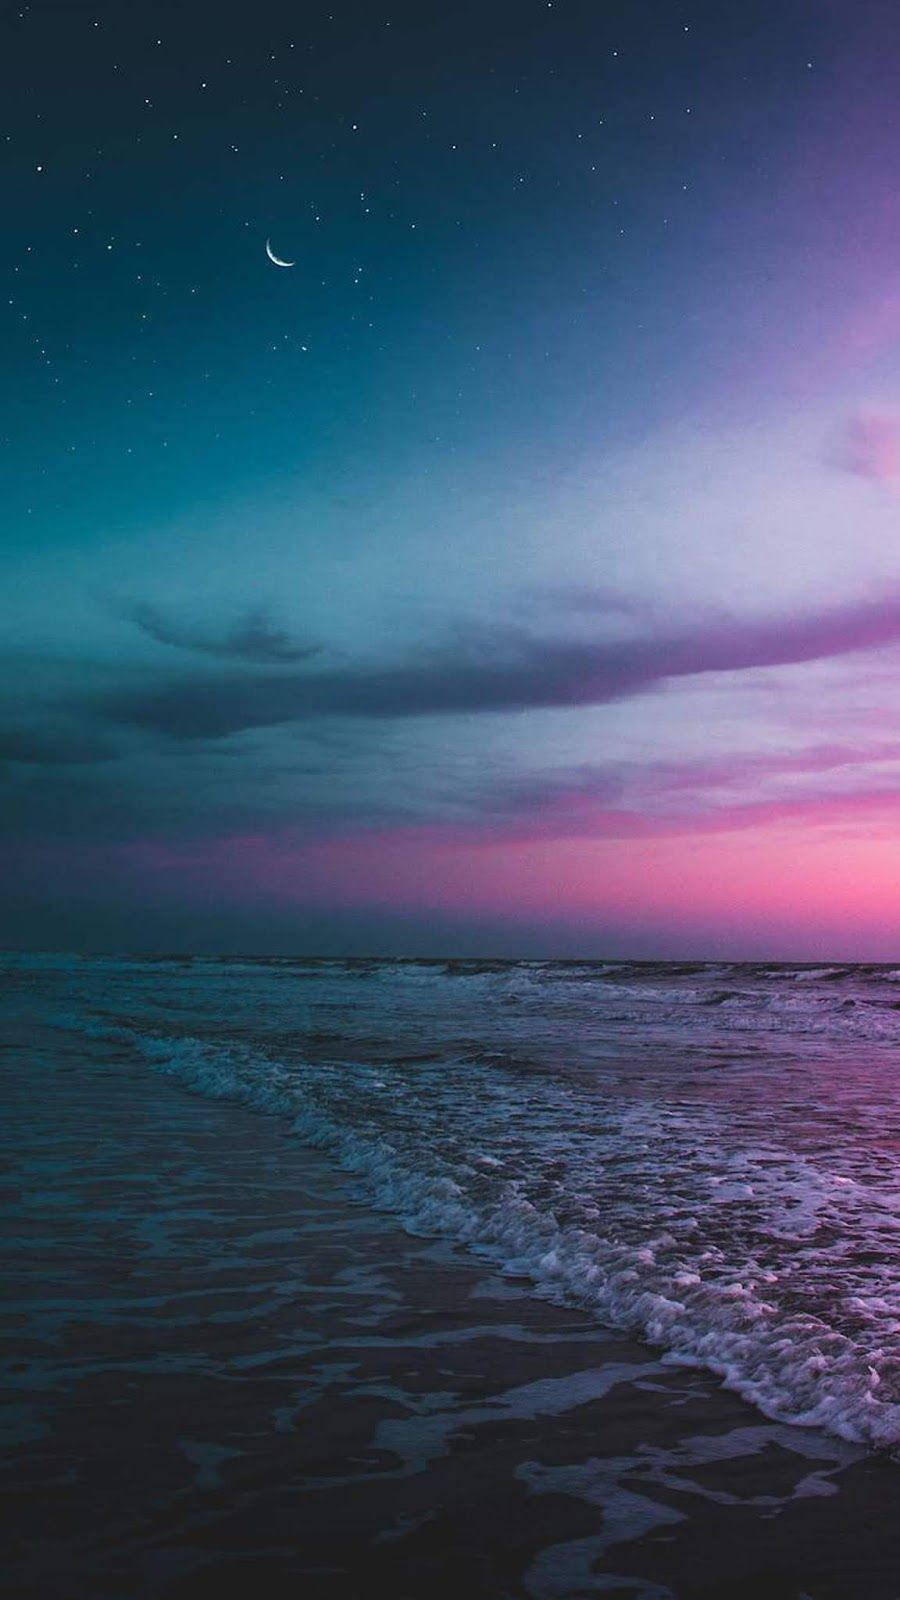 Beach The Night Sky Wallpaper Iphone Android Background Followme Night Sky Wallpaper Sky Aesthetic Night Skies